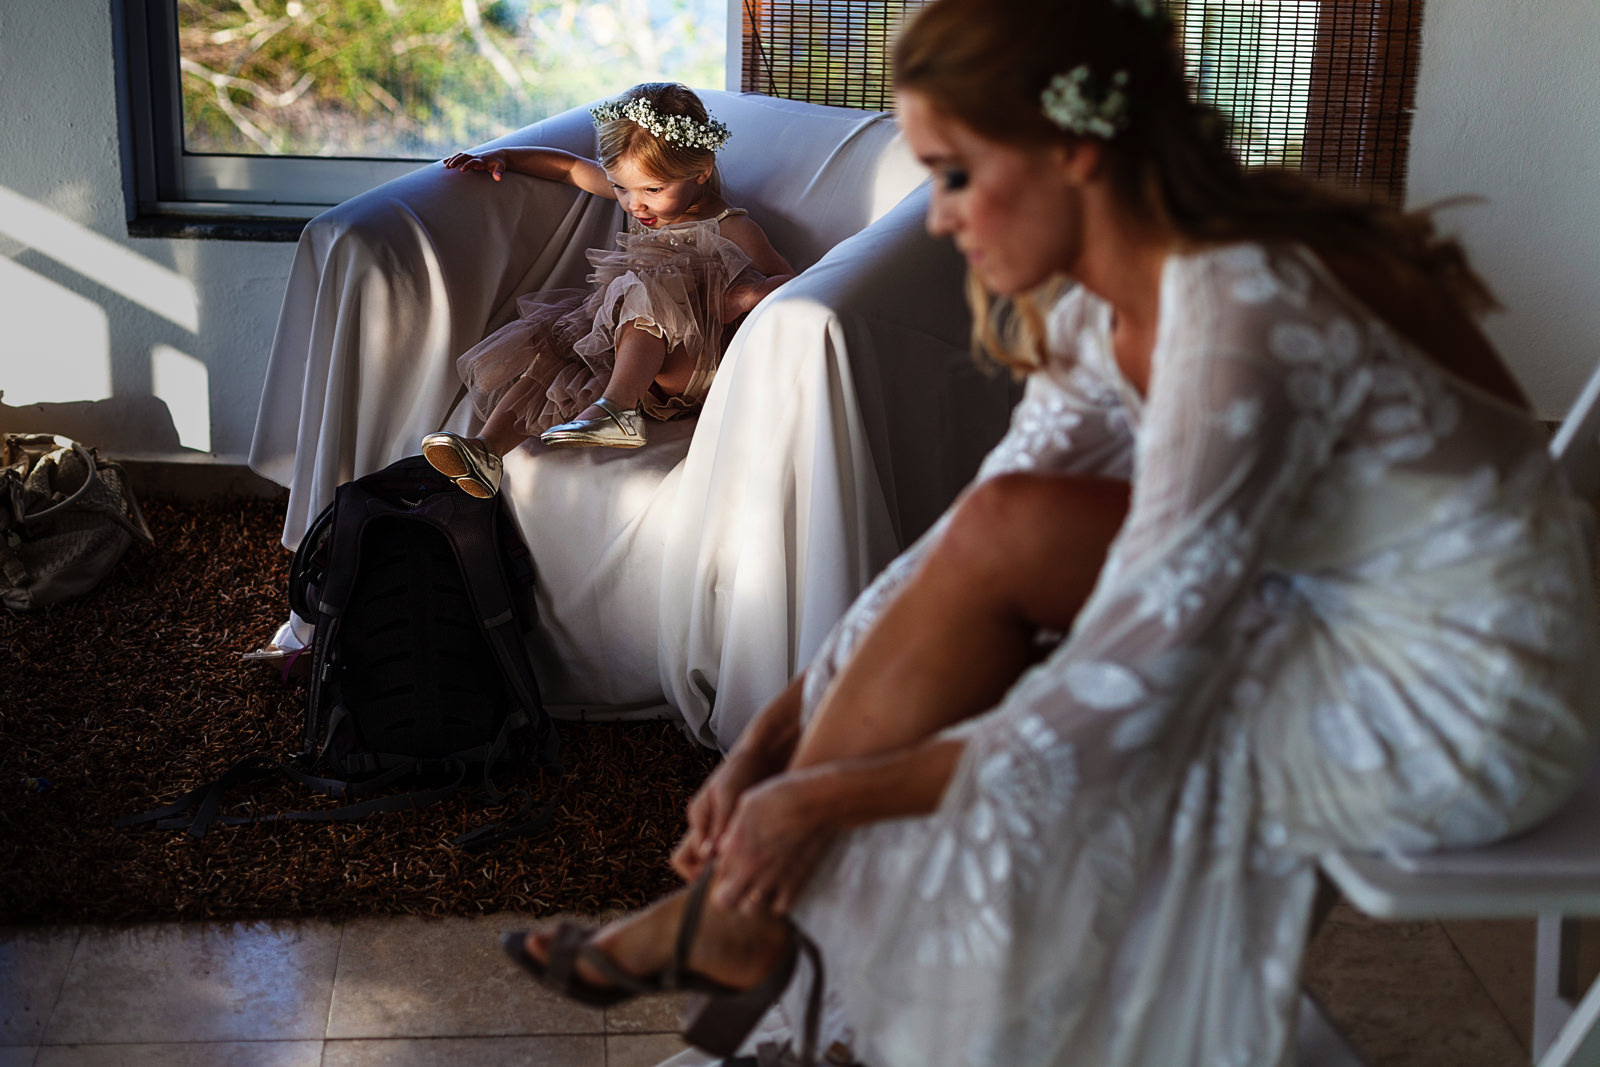 Bride putting her shoes on as toddler girl sits on a couch